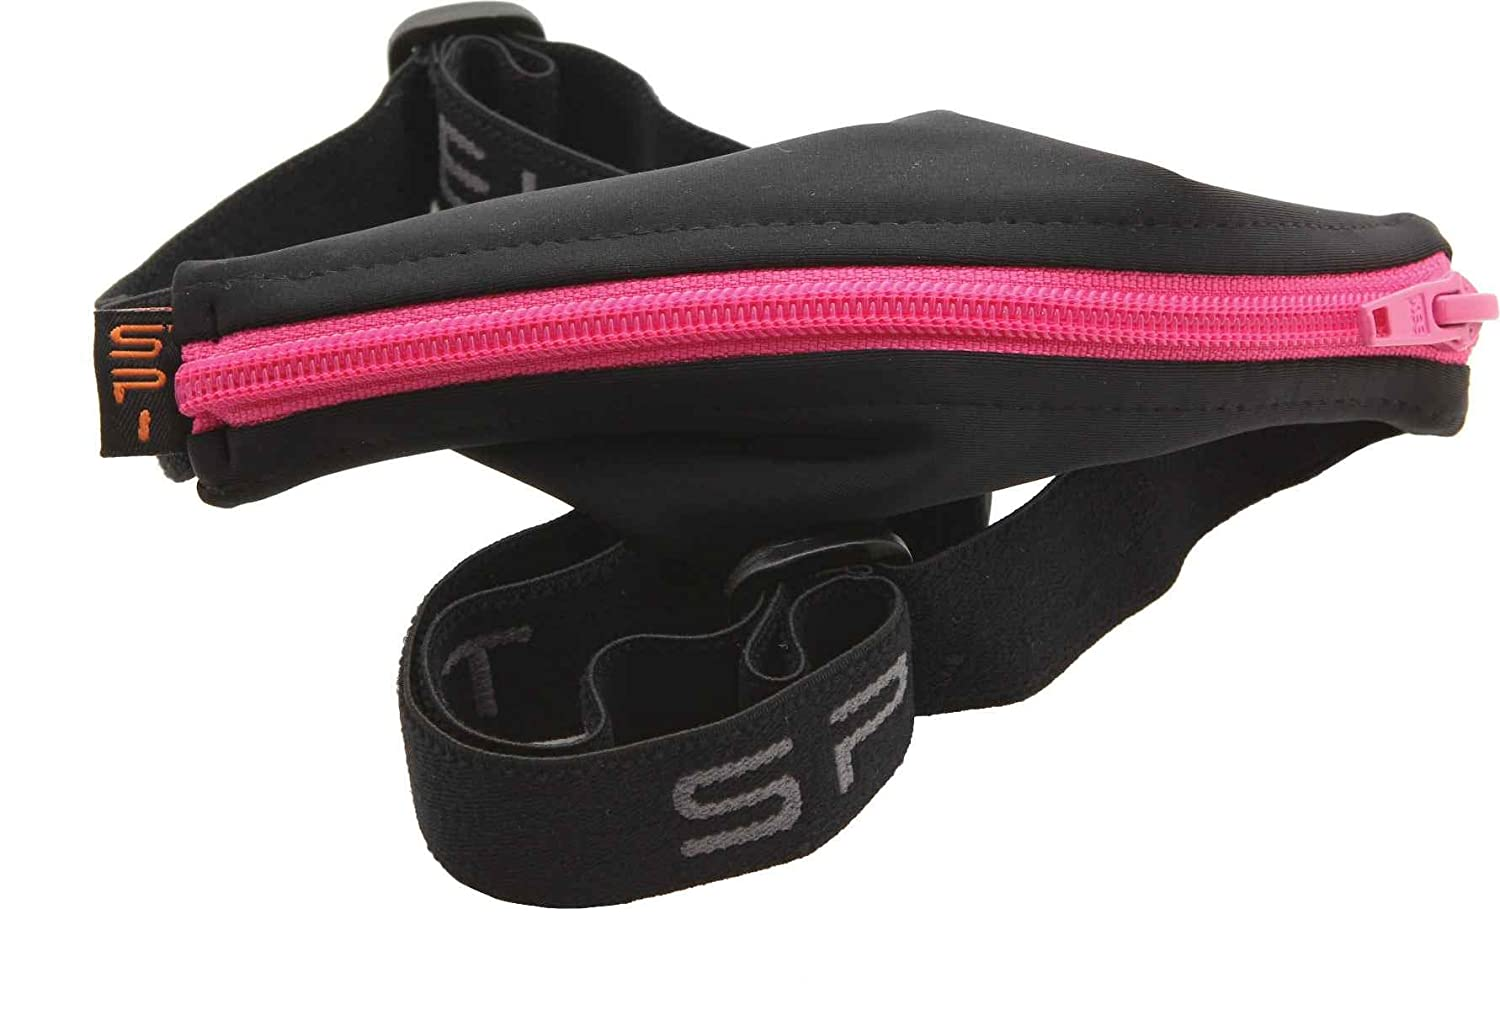 SPIbelt: Large Pocket No-Bounce Running Belt for Runners Hot Pink Zipper Fits iPhone 6+ and Other Large Phones Athletes and Adventurers